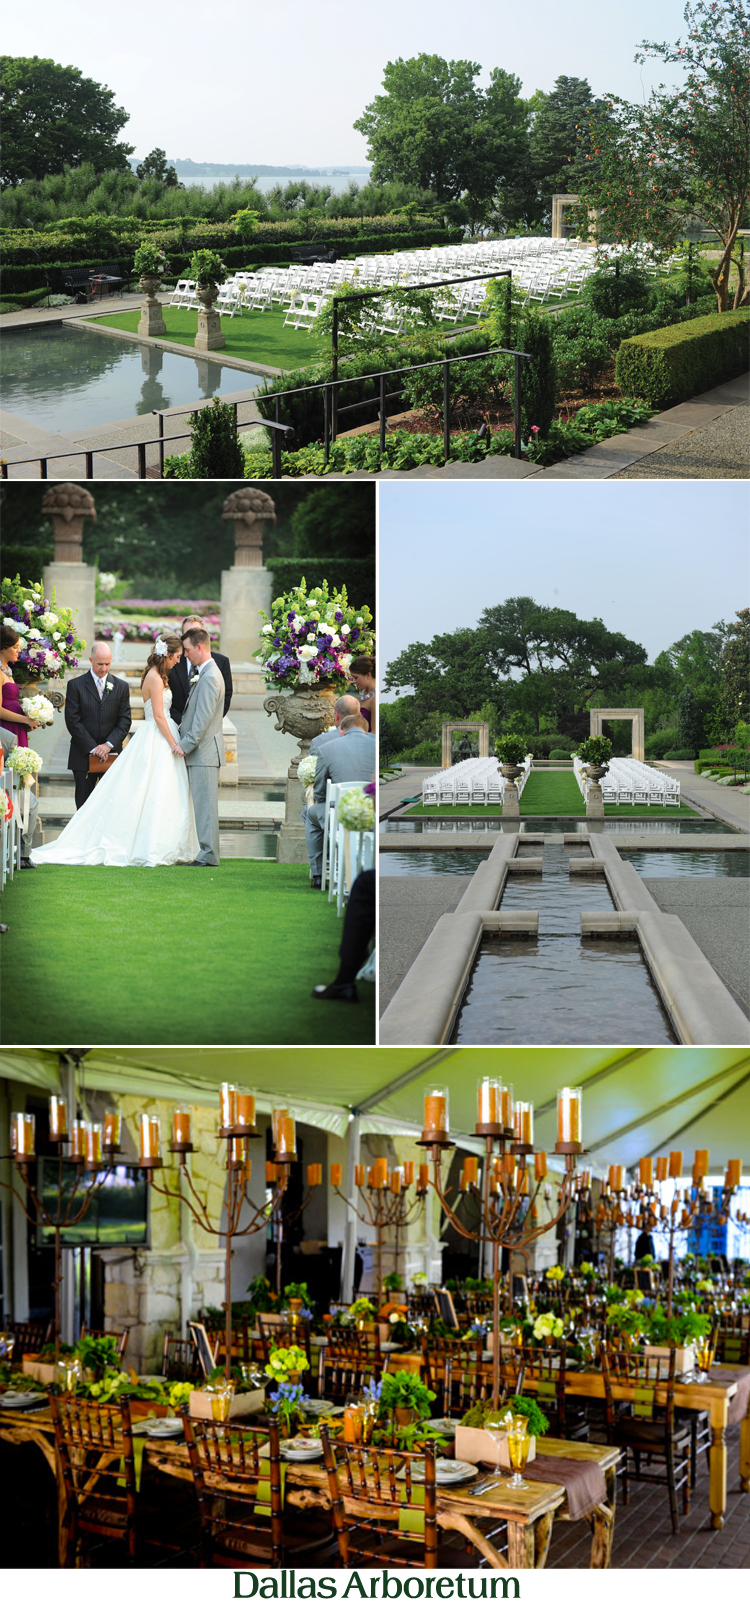 Dallas wedding and reception venue the Dallas Arboretum